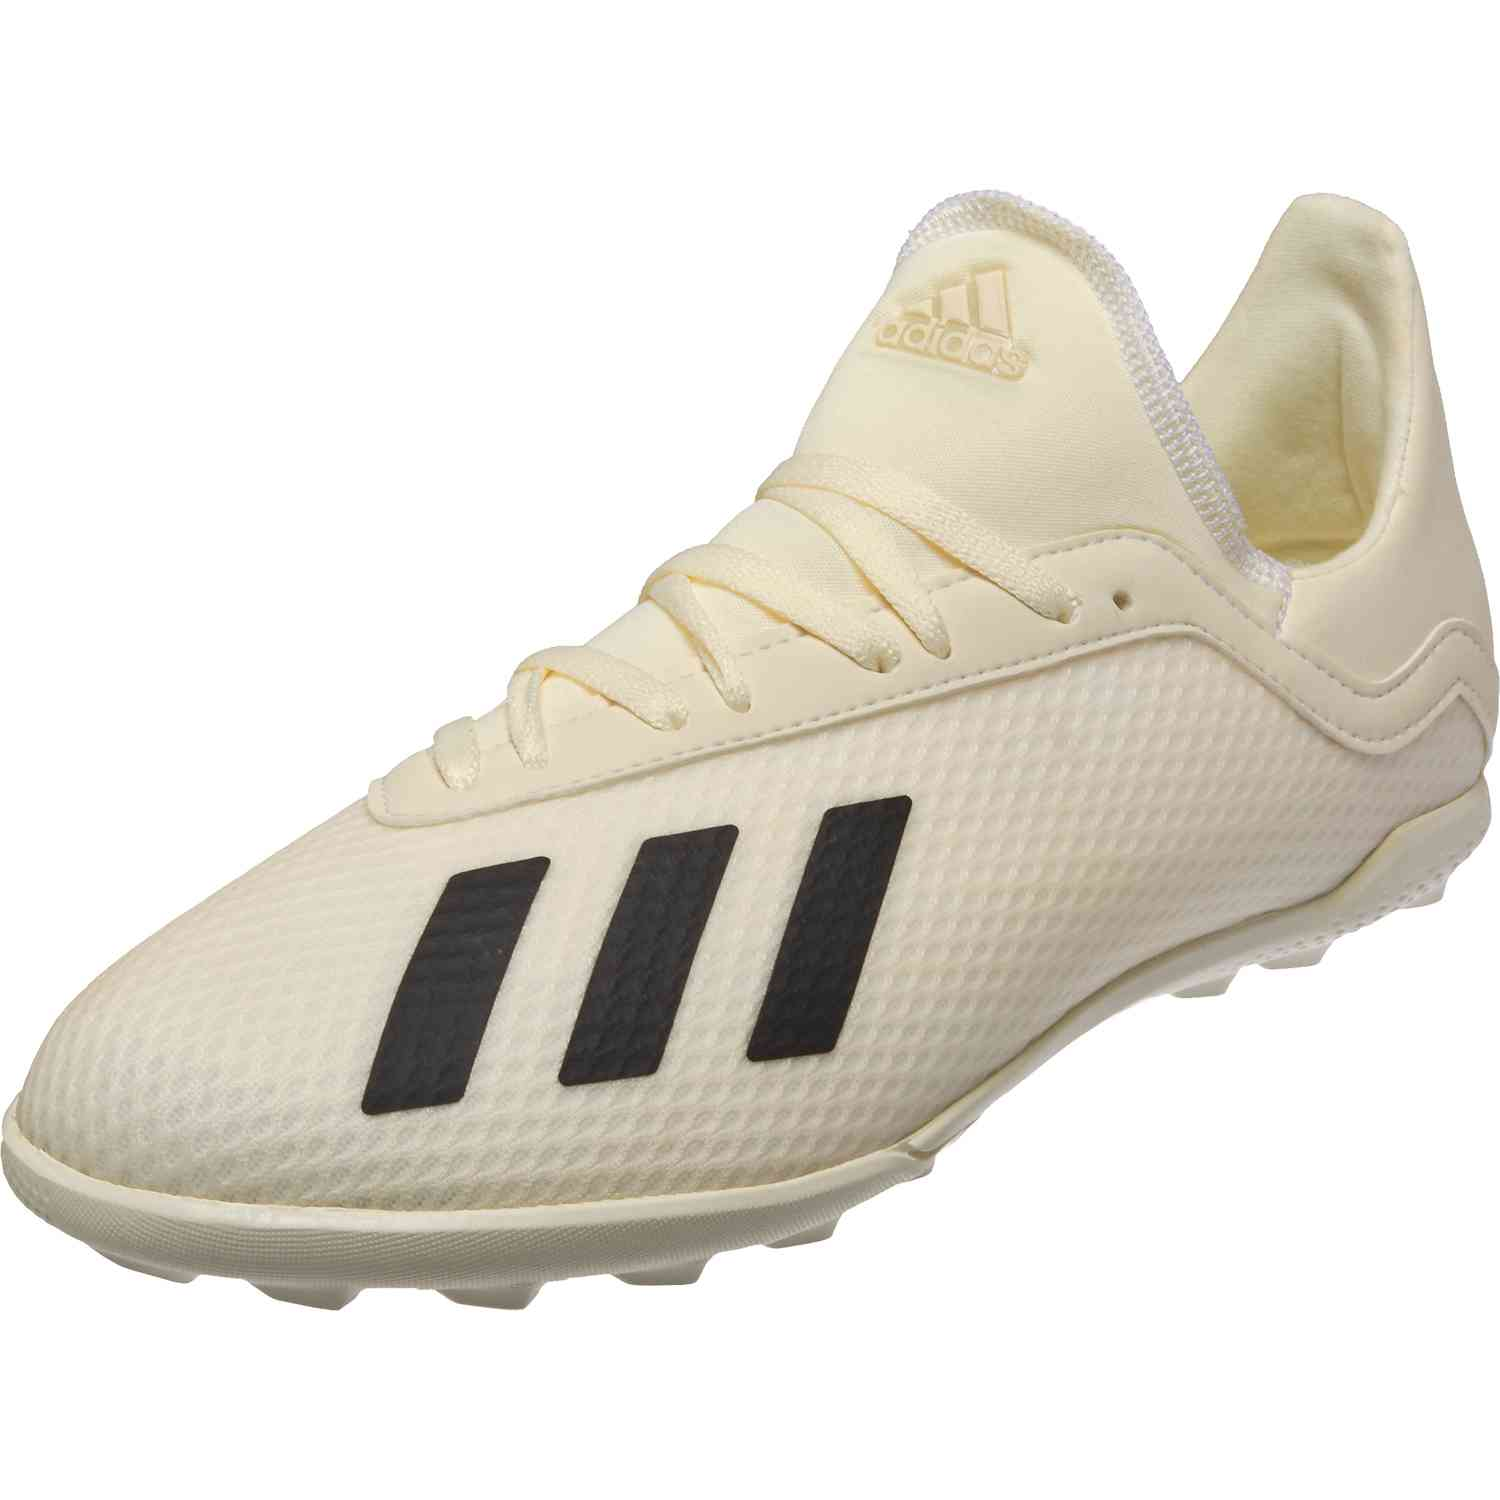 968ff940b adidas X Tango 18.3 TF - Youth - Off White/White/Black - SoccerPro